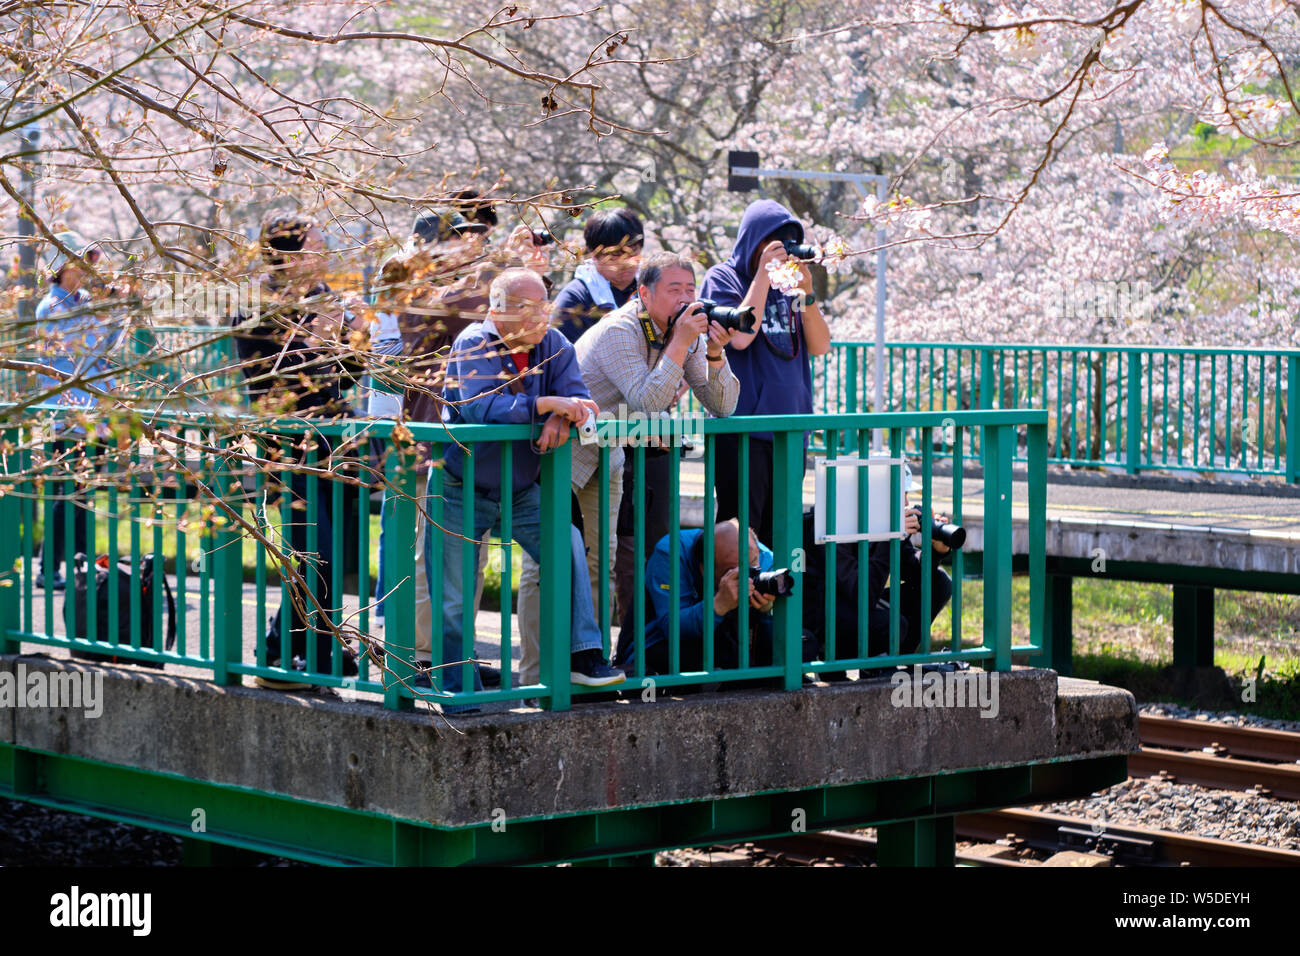 wakayama-prefecture-japan-large-group-of-amateur-photographers-waiting-for-train-to-come-around-bend-during-cherry-blossom-season-W5DEYH.jpg